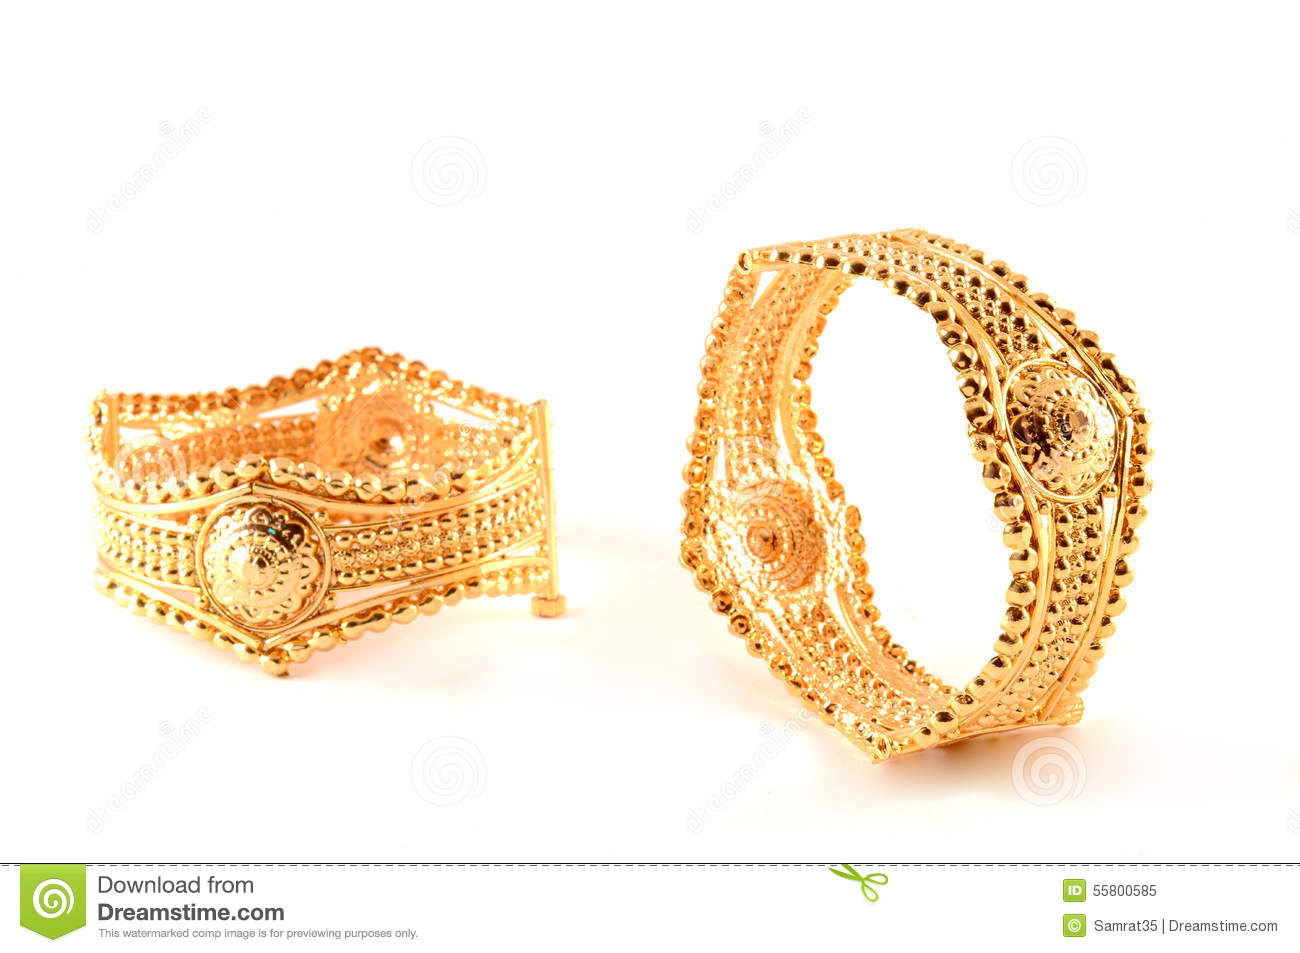 jewellery photo stock baby golden imitation fake shiny bracelets gold of image some metals made